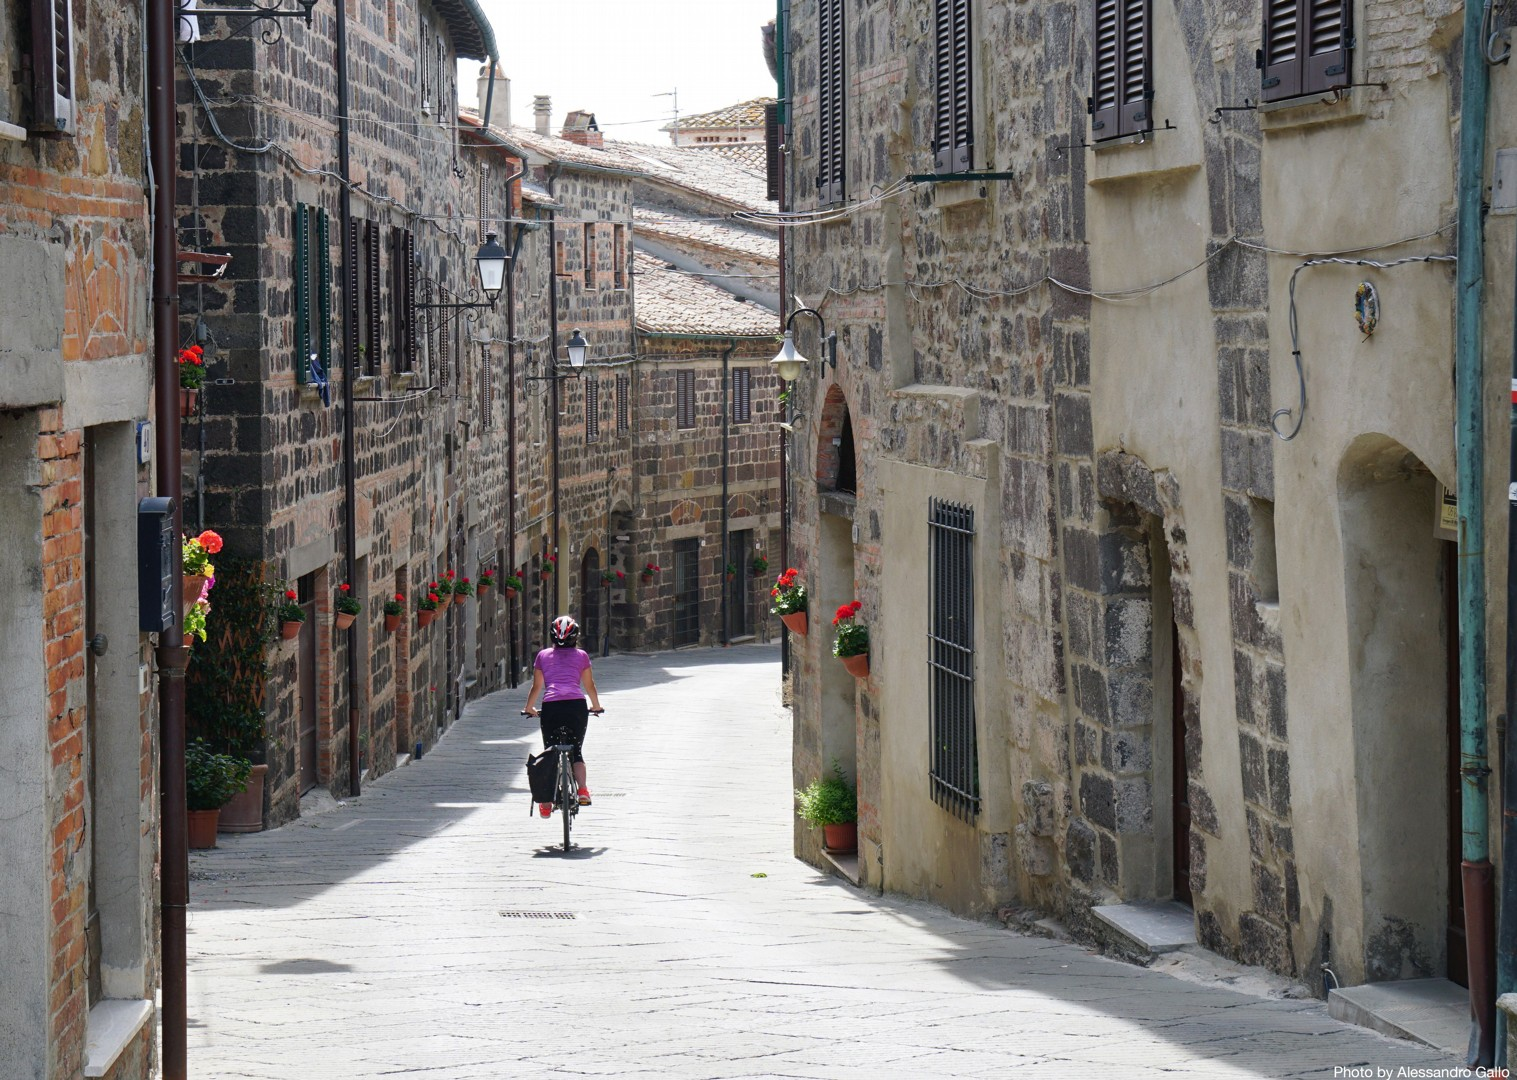 valle-umbra-italy-spirit-of-umbria-self-guided-leisure-cycling-holiday.JPG - Italy - Spirit of Umbria - Family Cycling